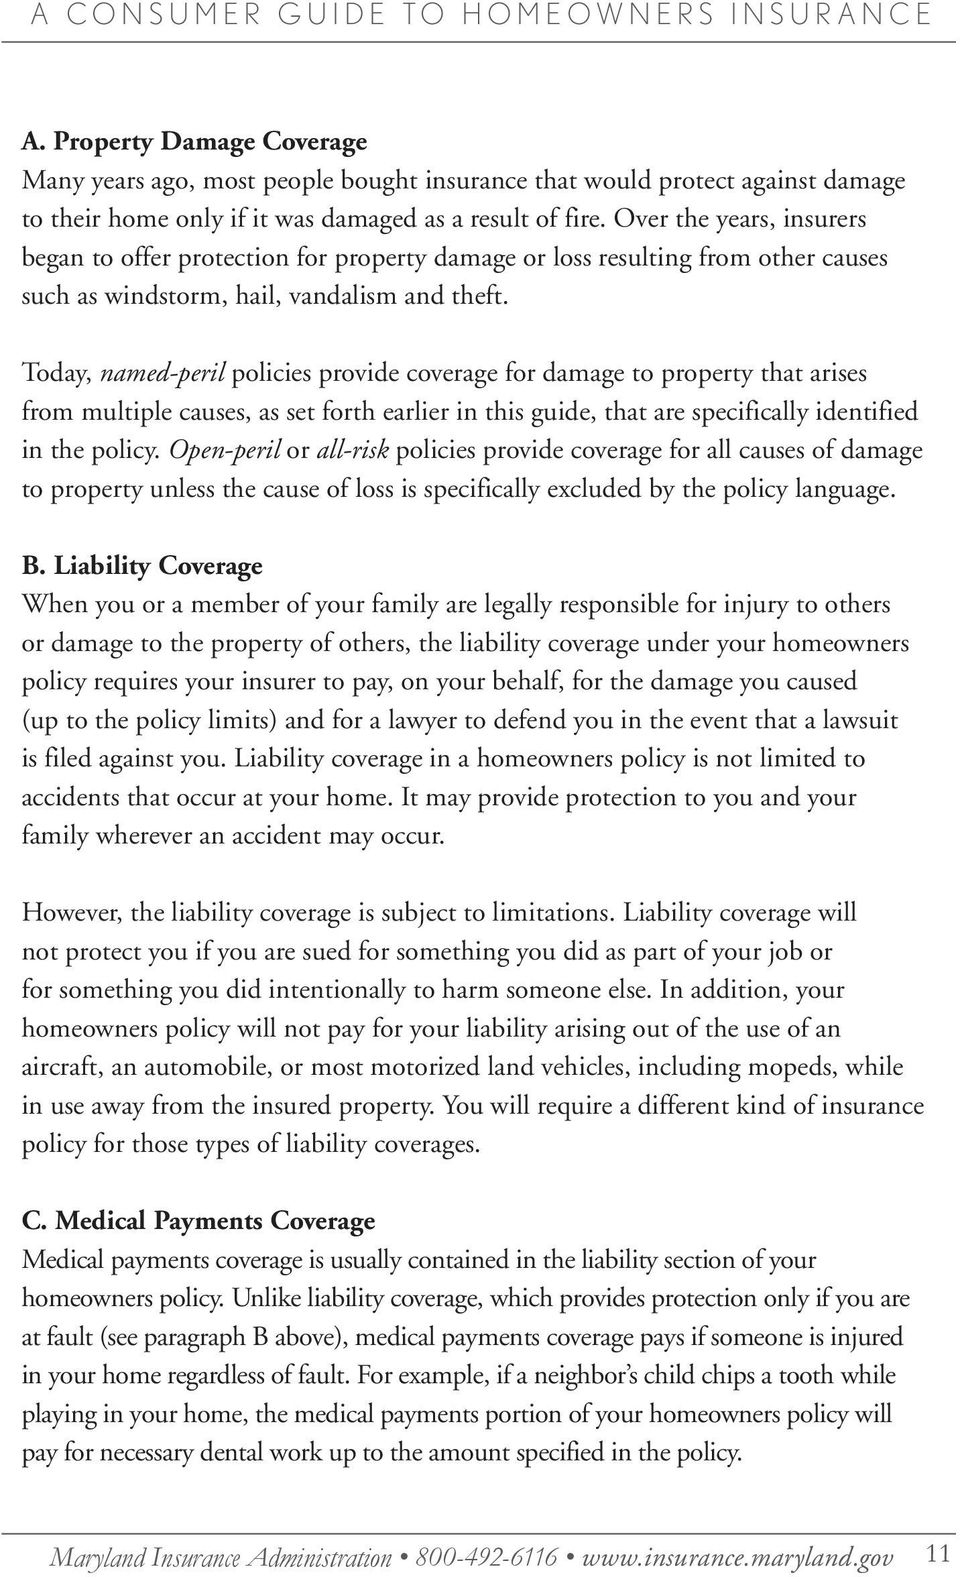 Today, named-peril policies provide coverage for damage to property that arises from multiple causes, as set forth earlier in this guide, that are specifically identified in the policy.